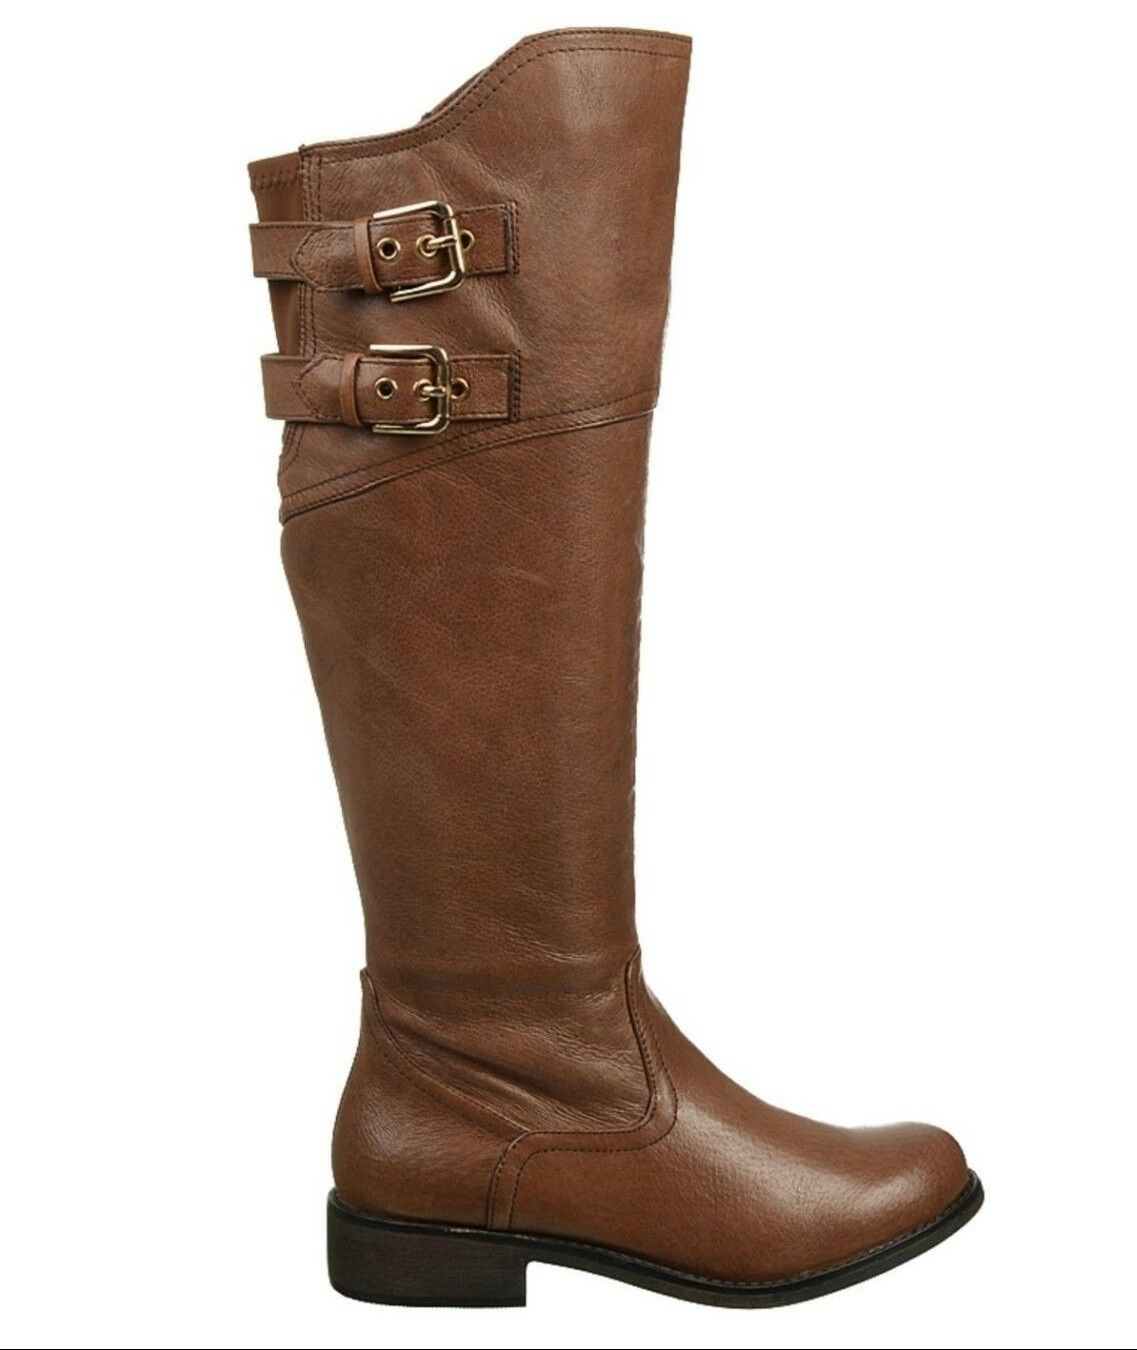 STEVE MADDEN chaussures OTIS RIDING bottes BEIGE LEATHER KNEE HIGH 8